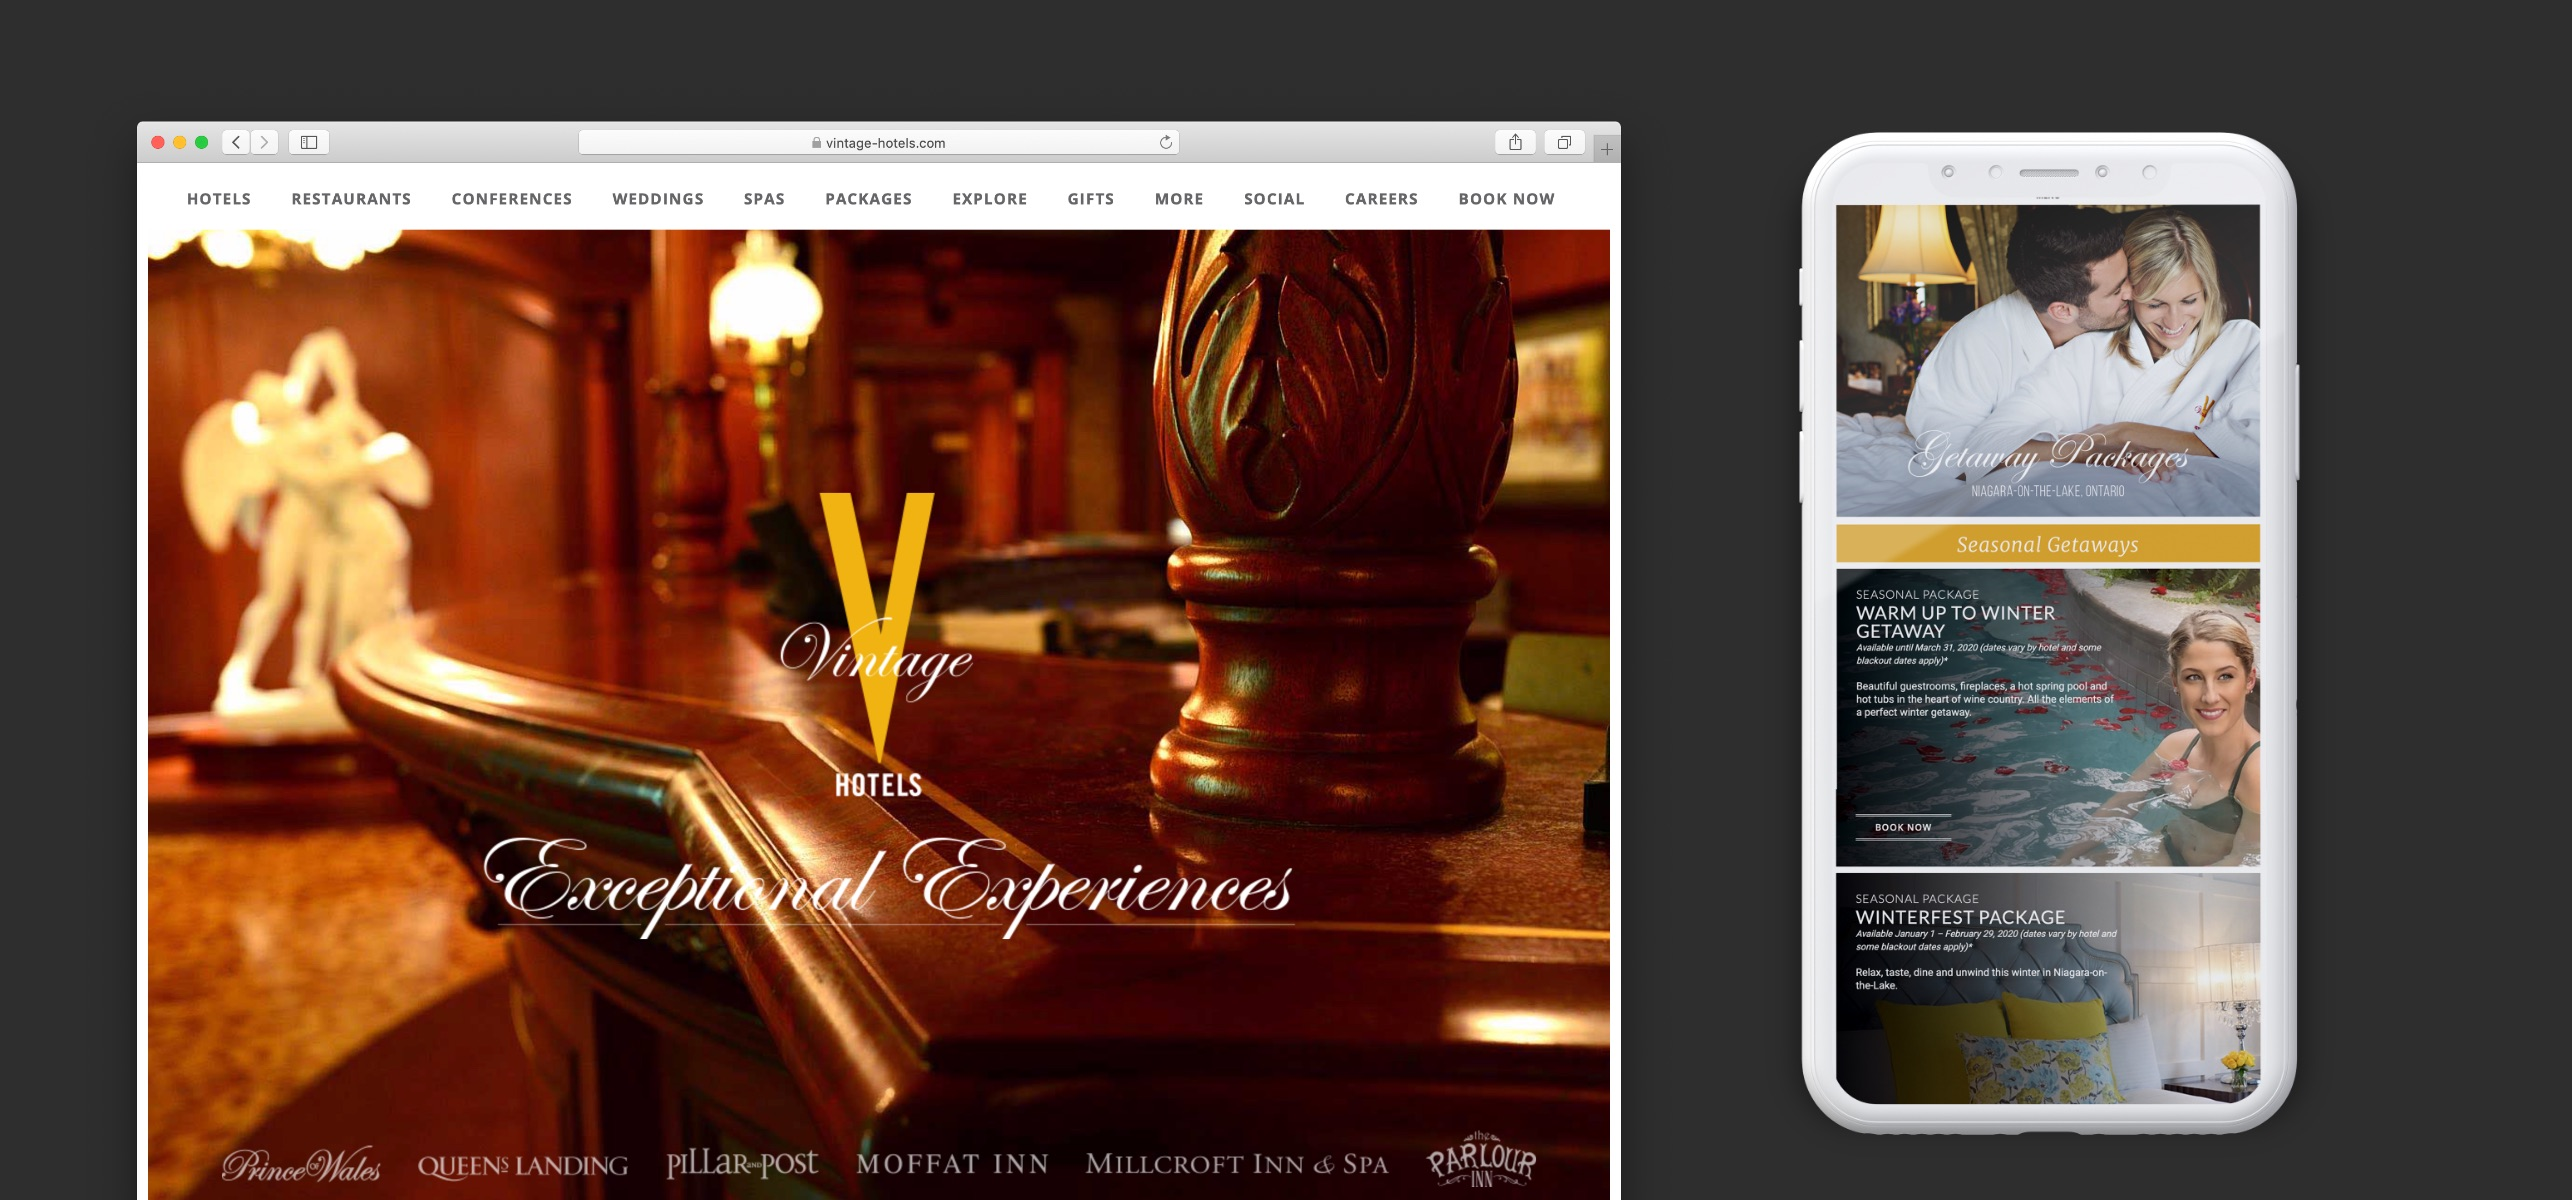 vintage hotels website design